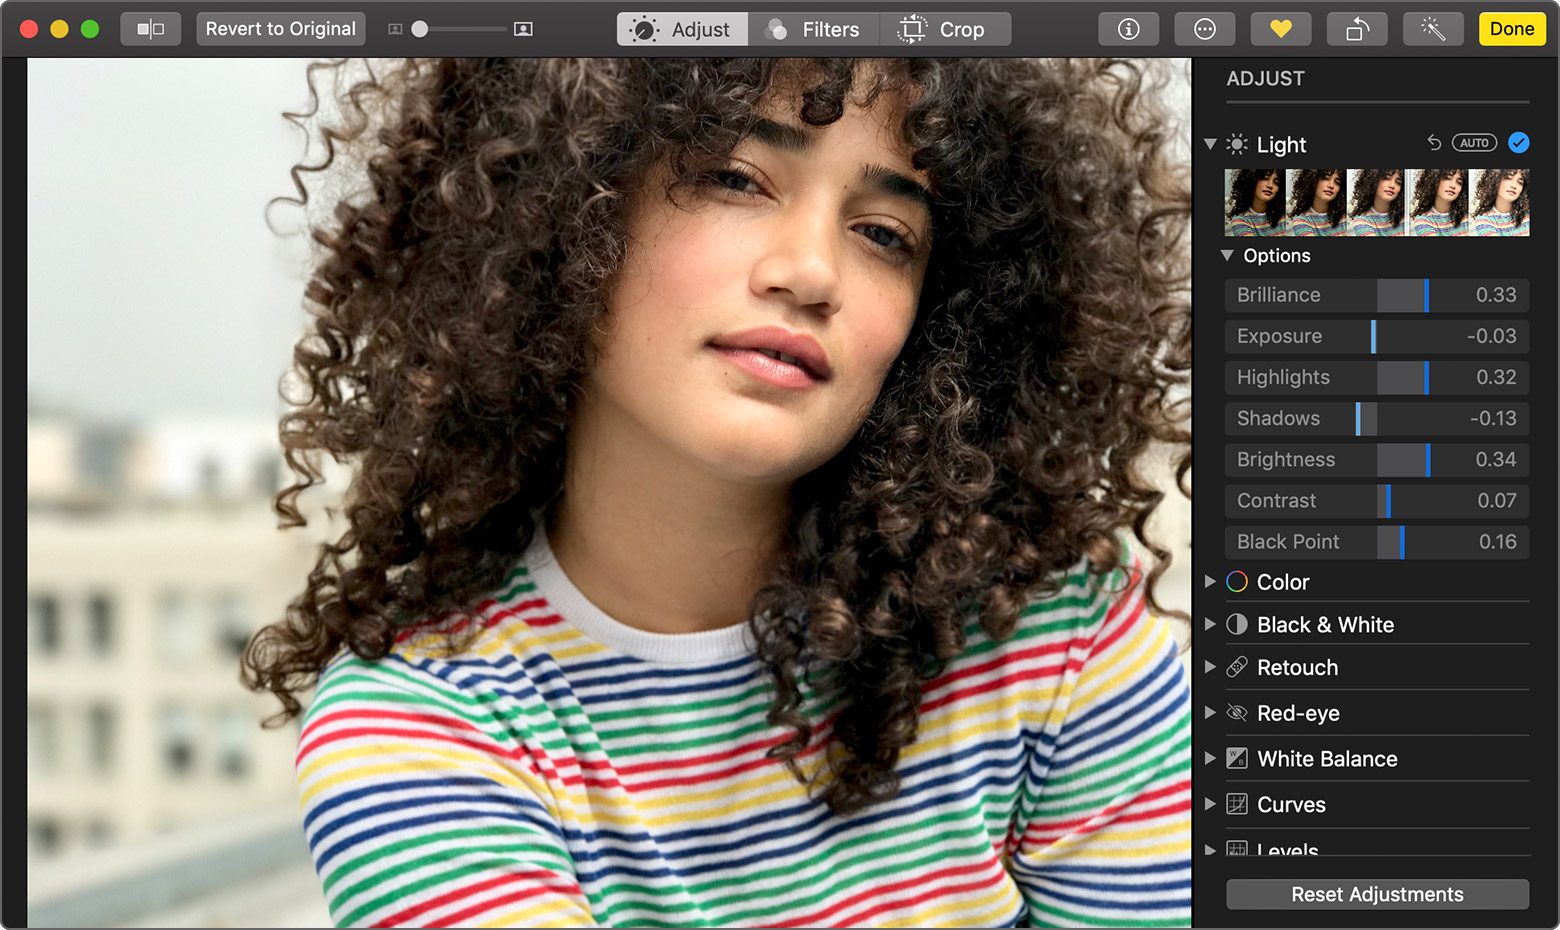 using the Light editing options in Photos on Mac